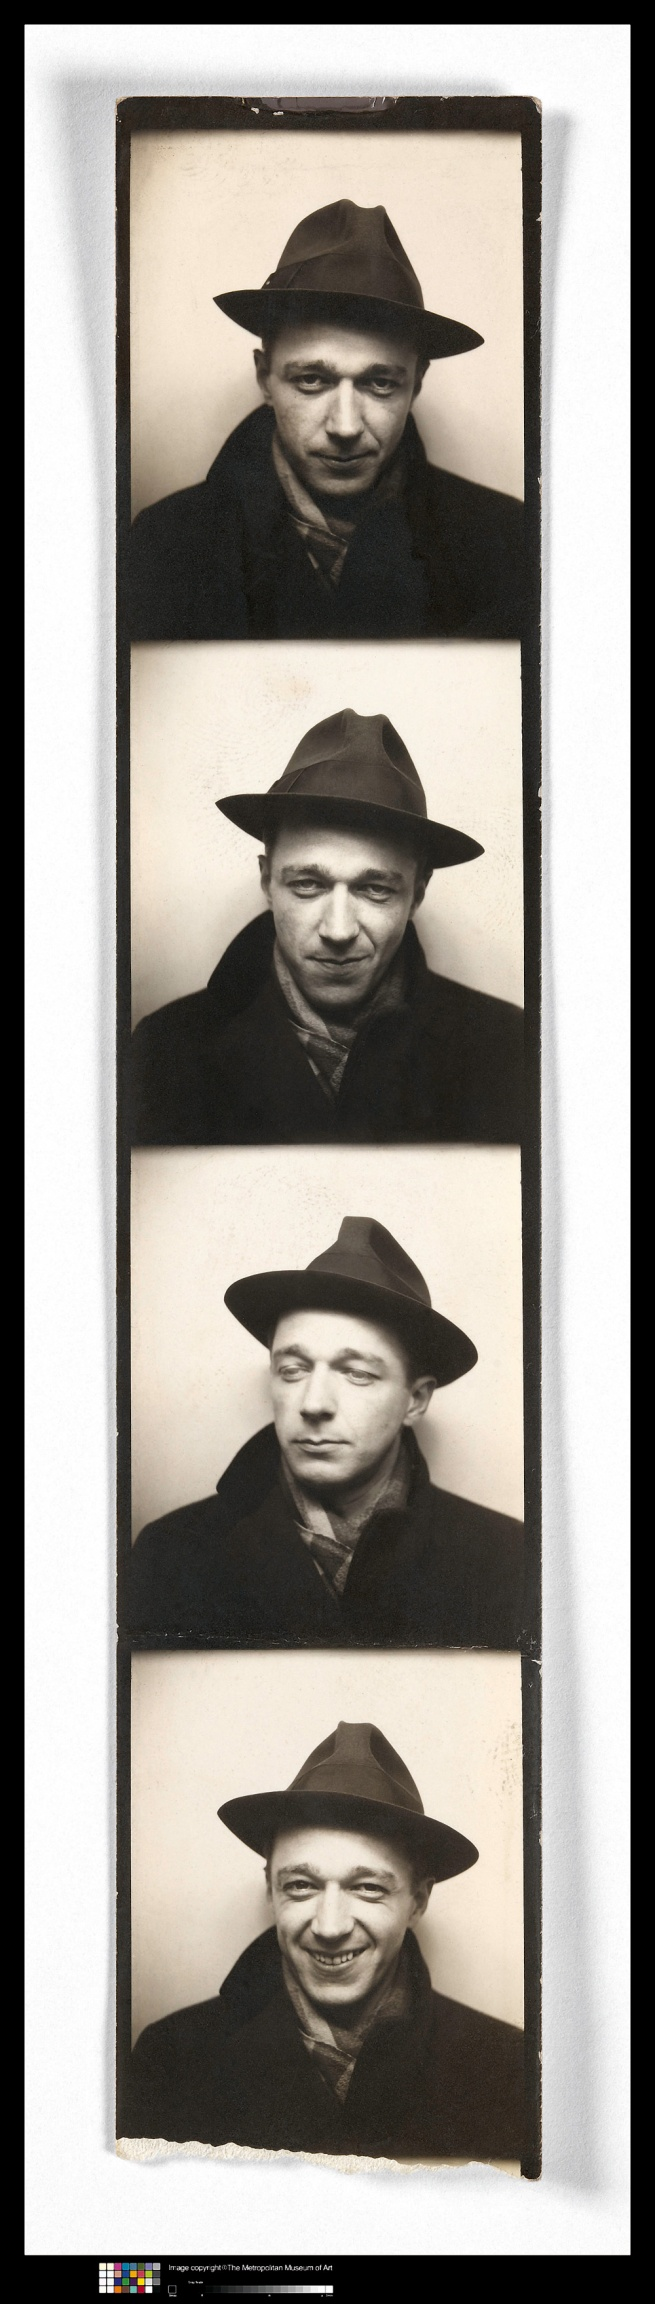 Walker Evans (1903-1975) 'Self-Portrait in Automated Photobooth' 1930